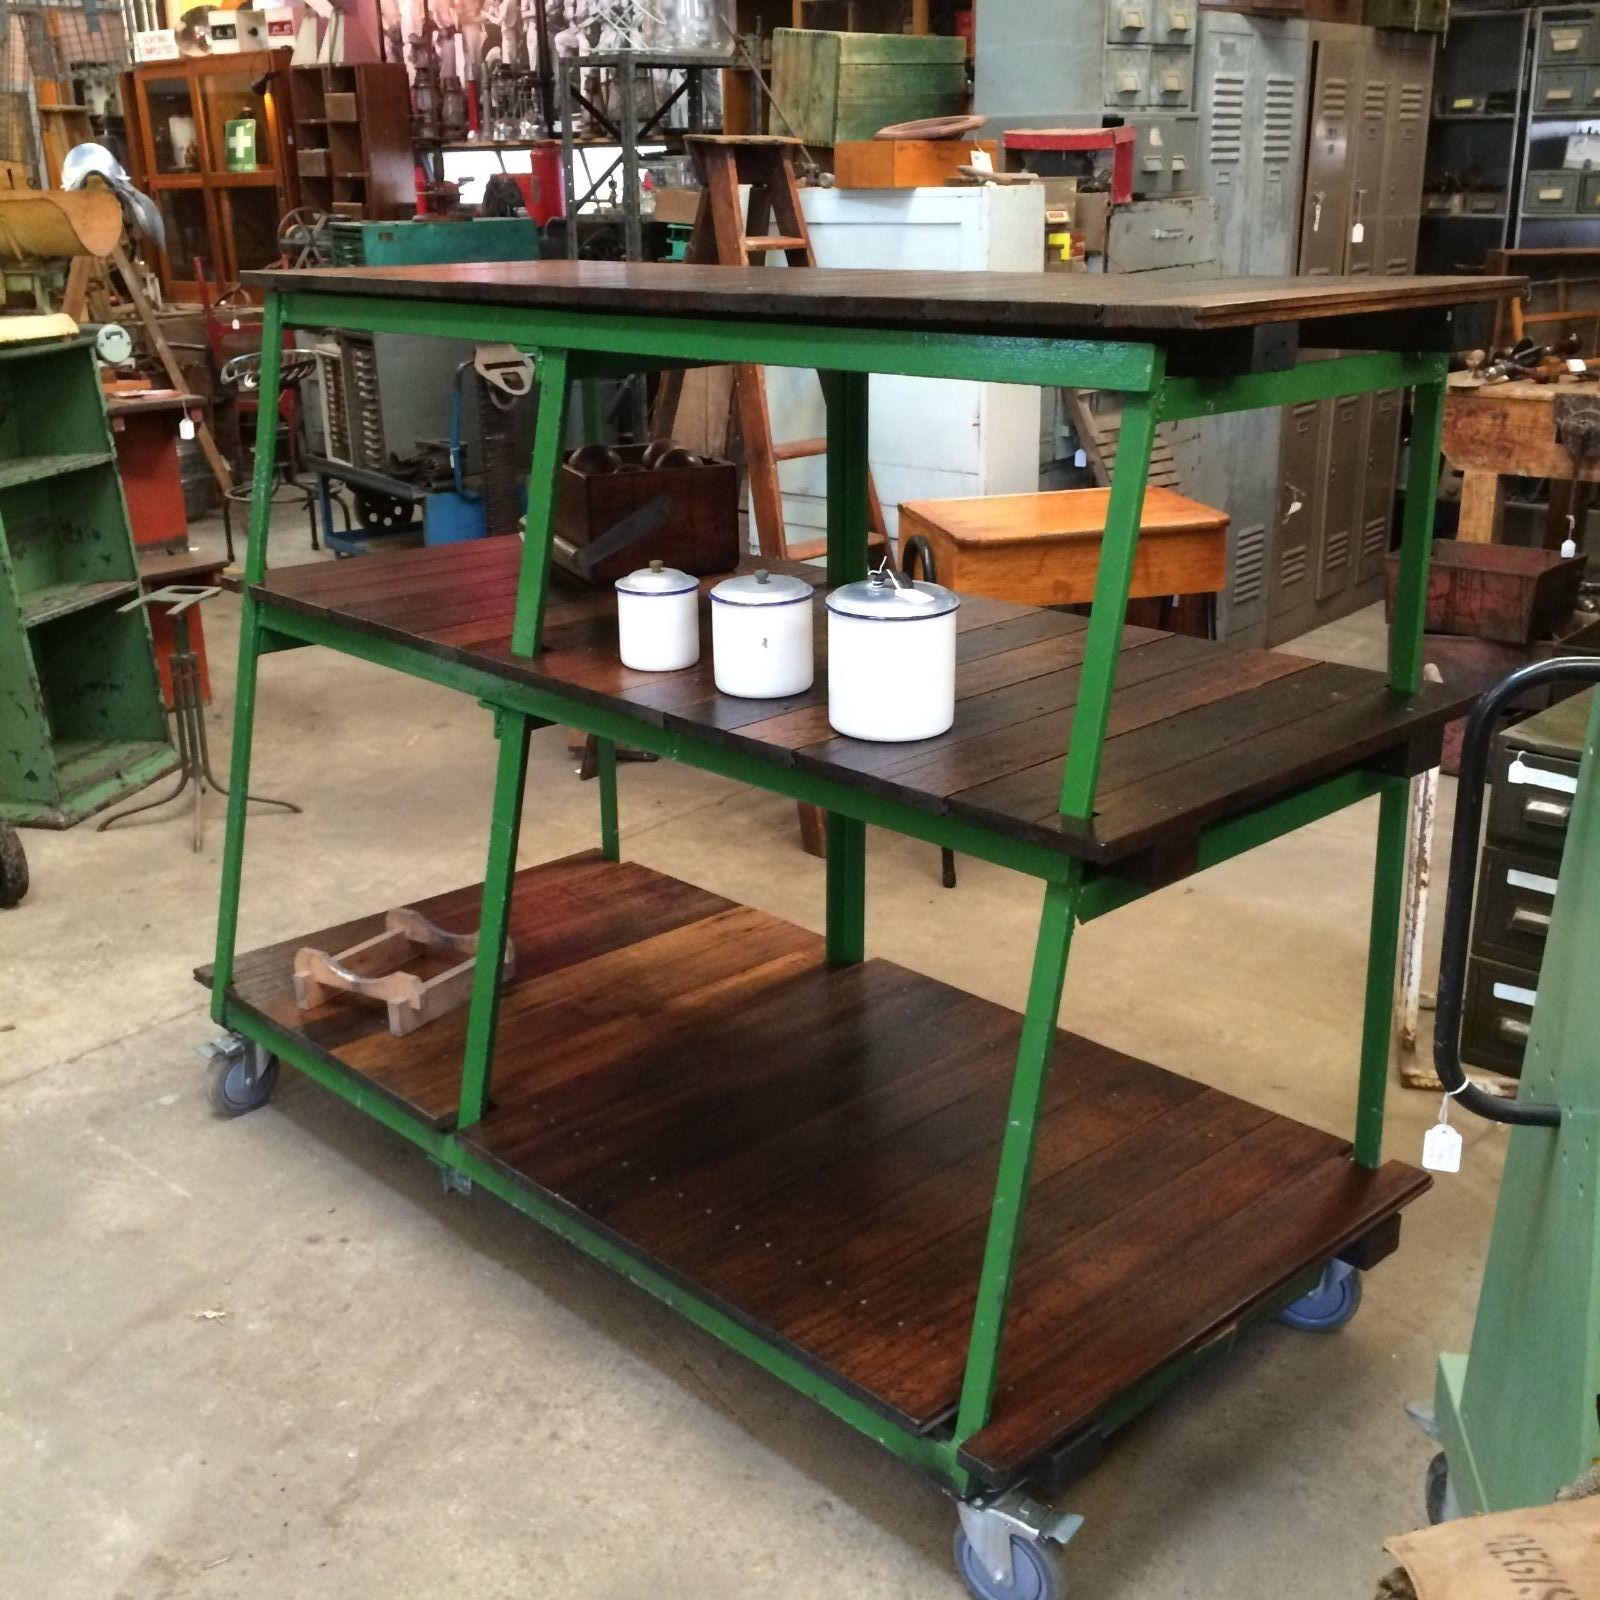 Industrial Kitchen Hire: Industrial Vintage Timber Rustic 3 Tier Shelving Bench